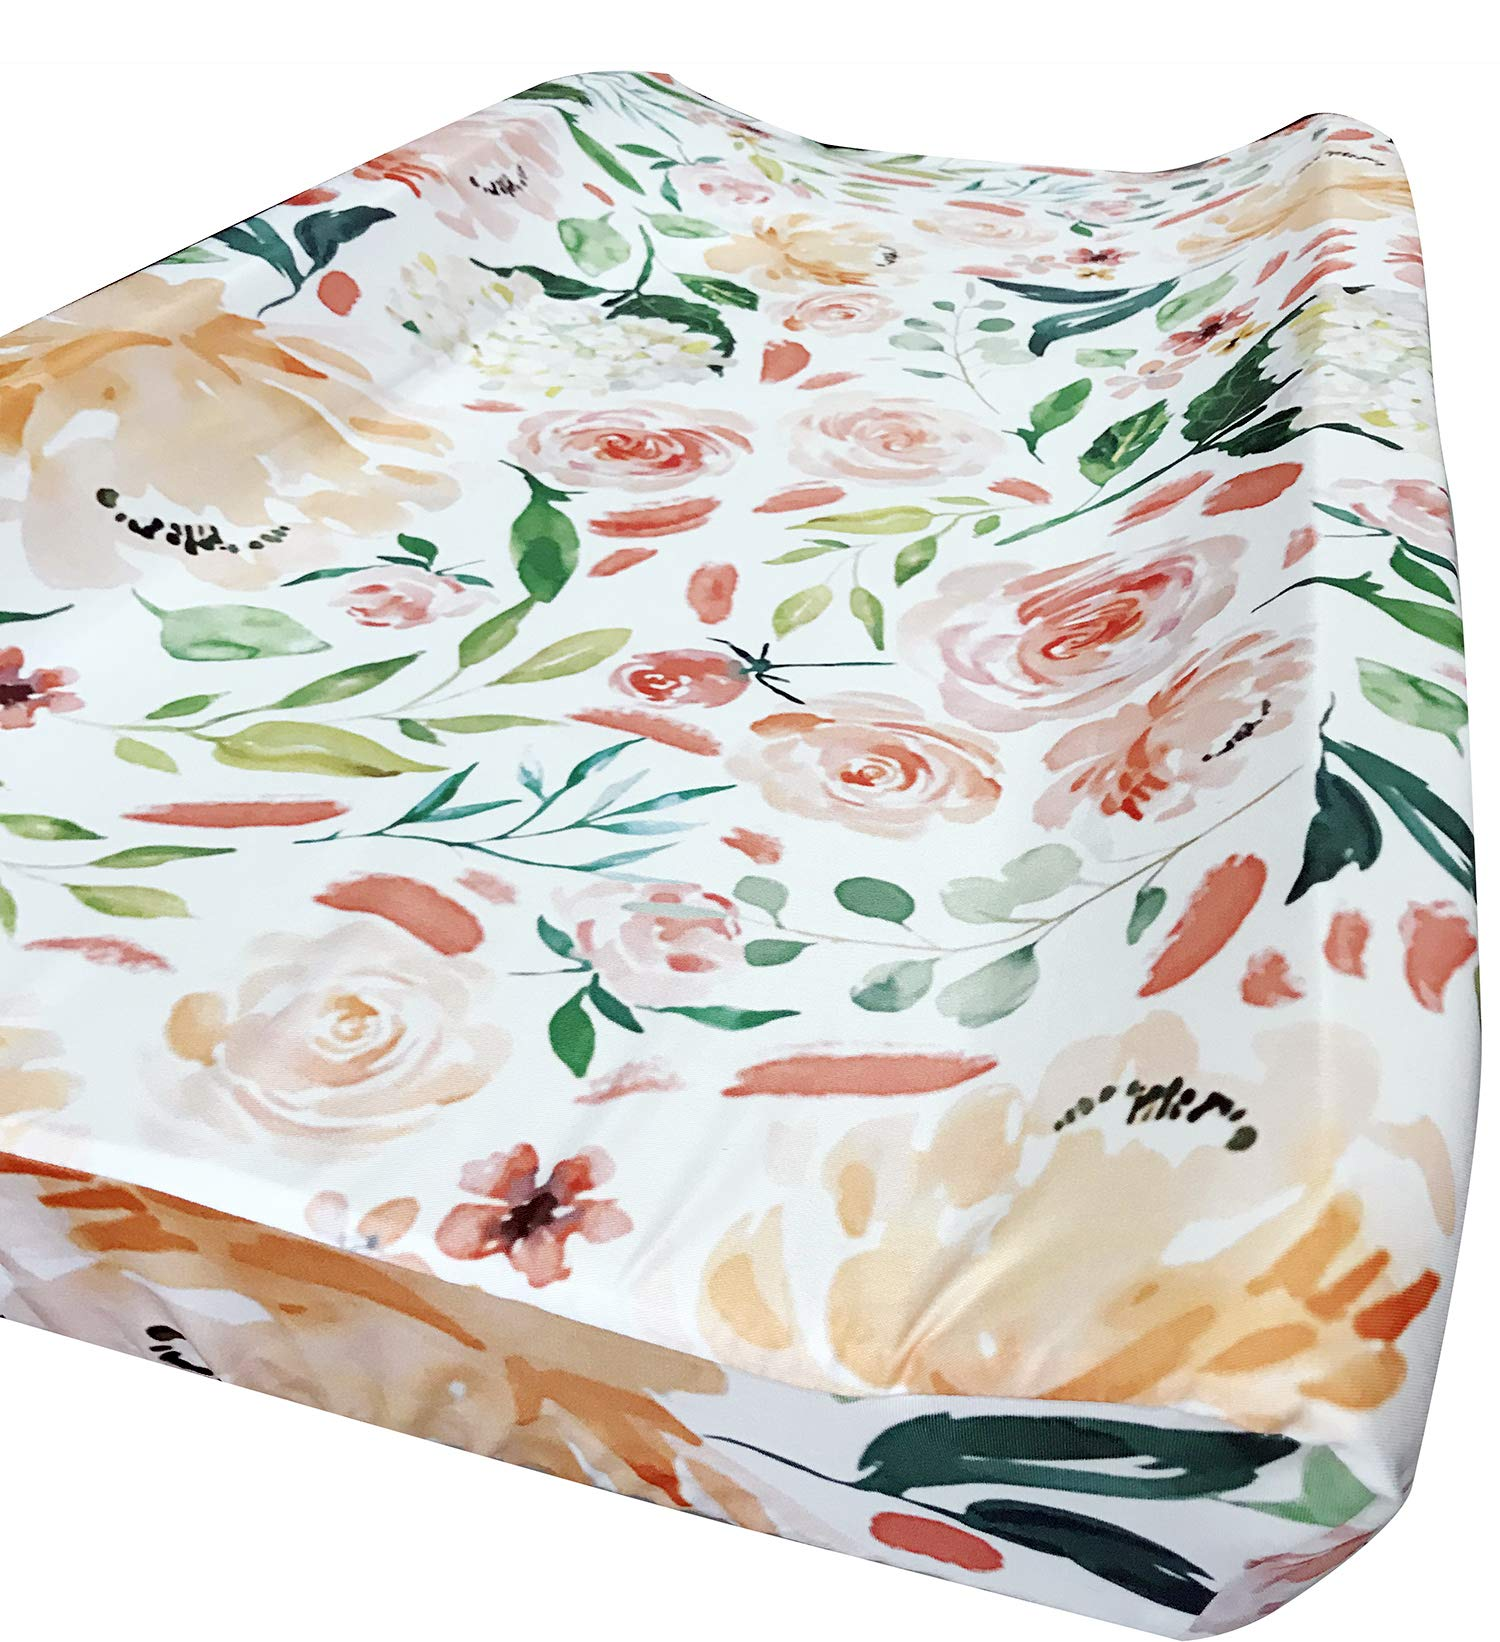 Baby Girl Crib Bedding Floral Changing Pad Cover (Secret Garden) by Sahaler